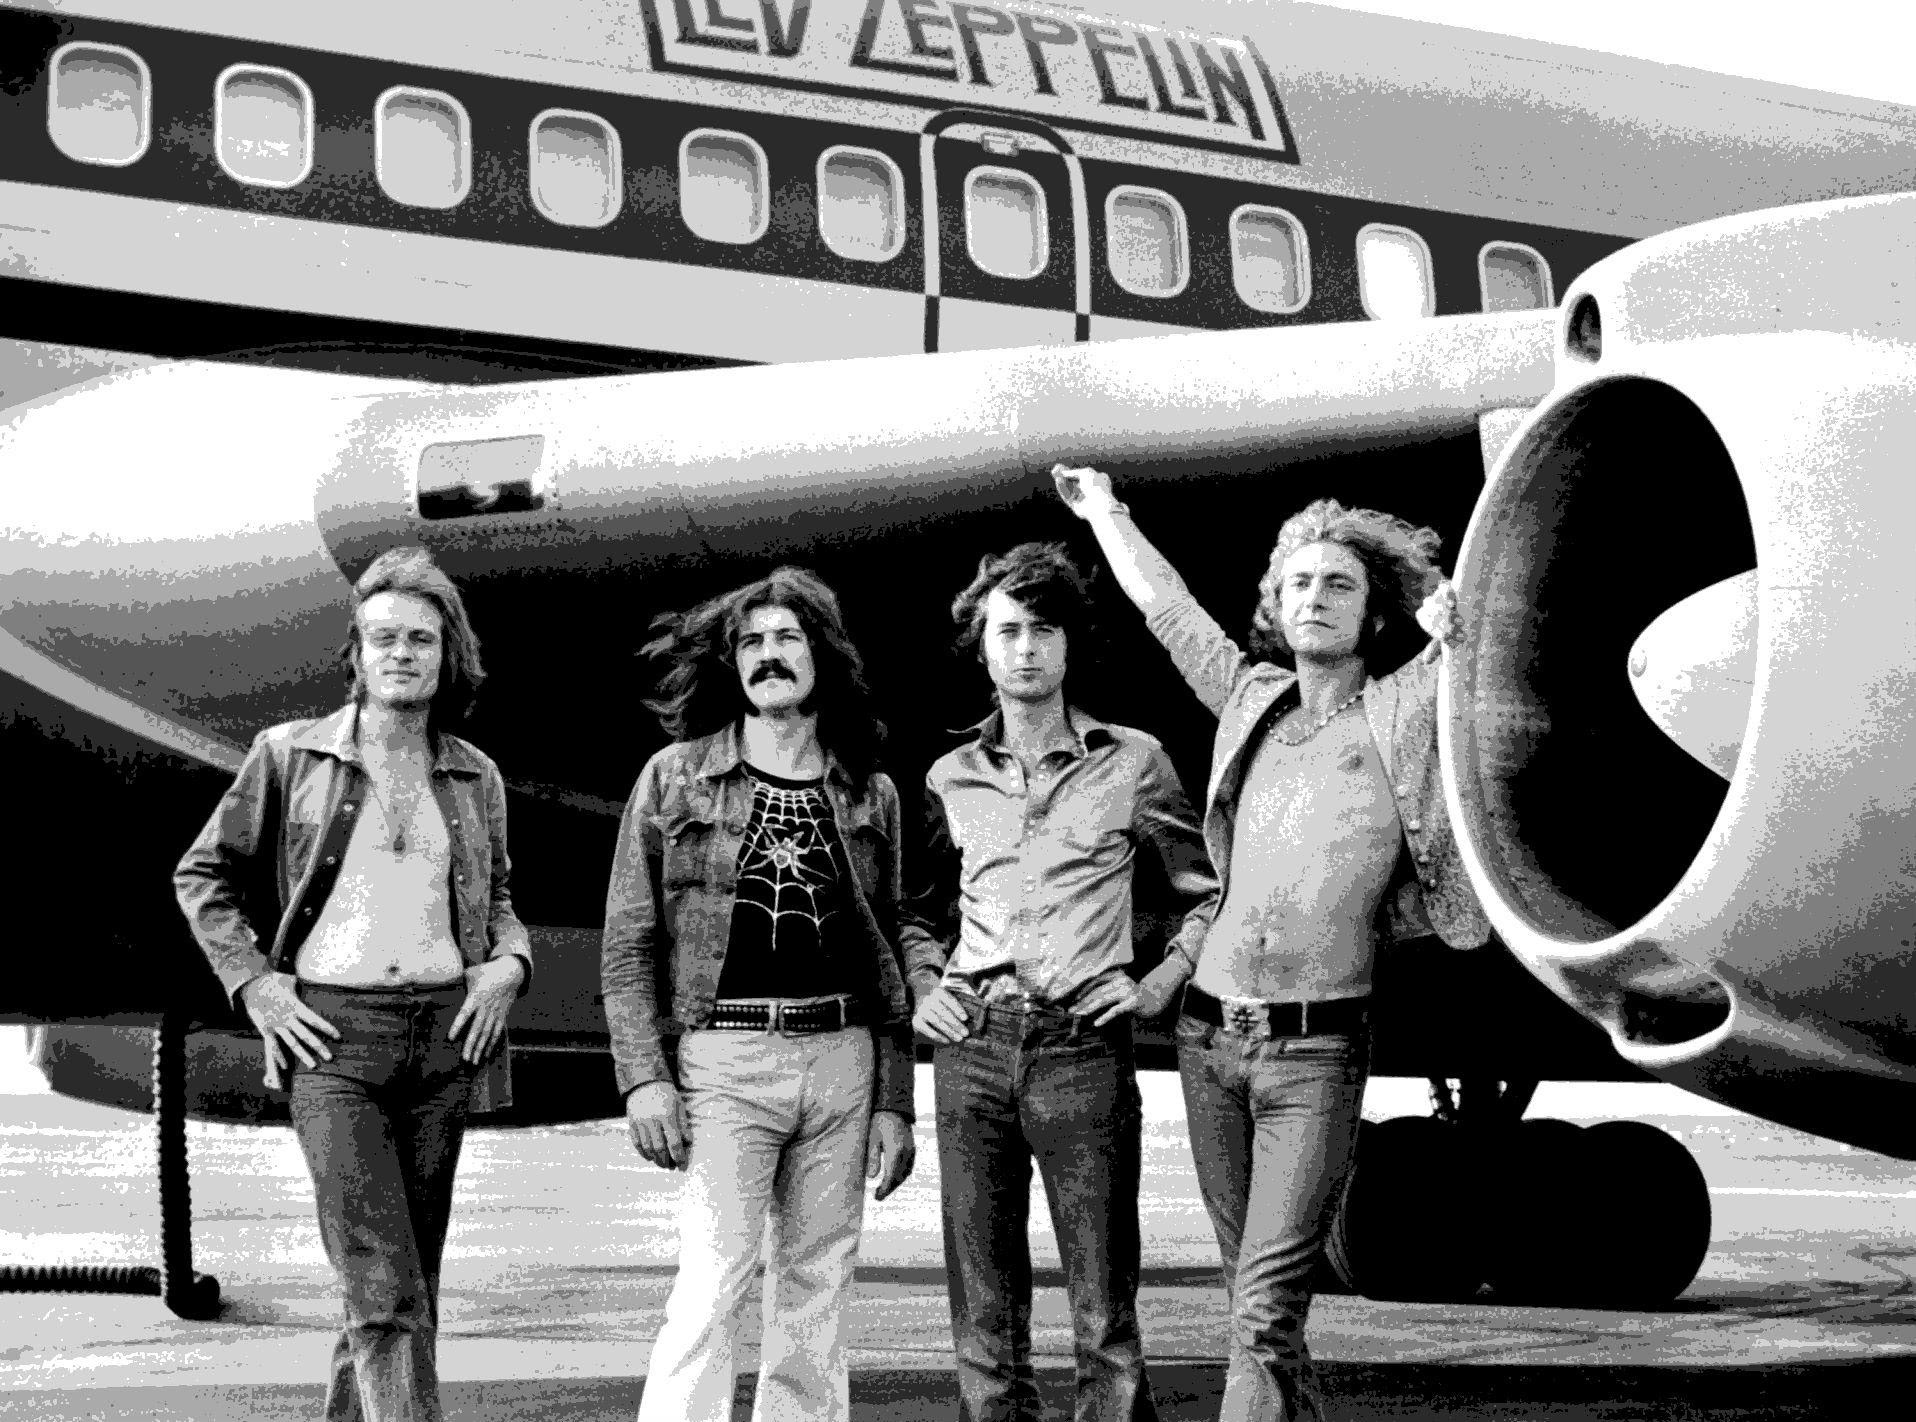 Hd Led Zeppelin Hard Rock Classic Groups Bands Jimmy Page Robert